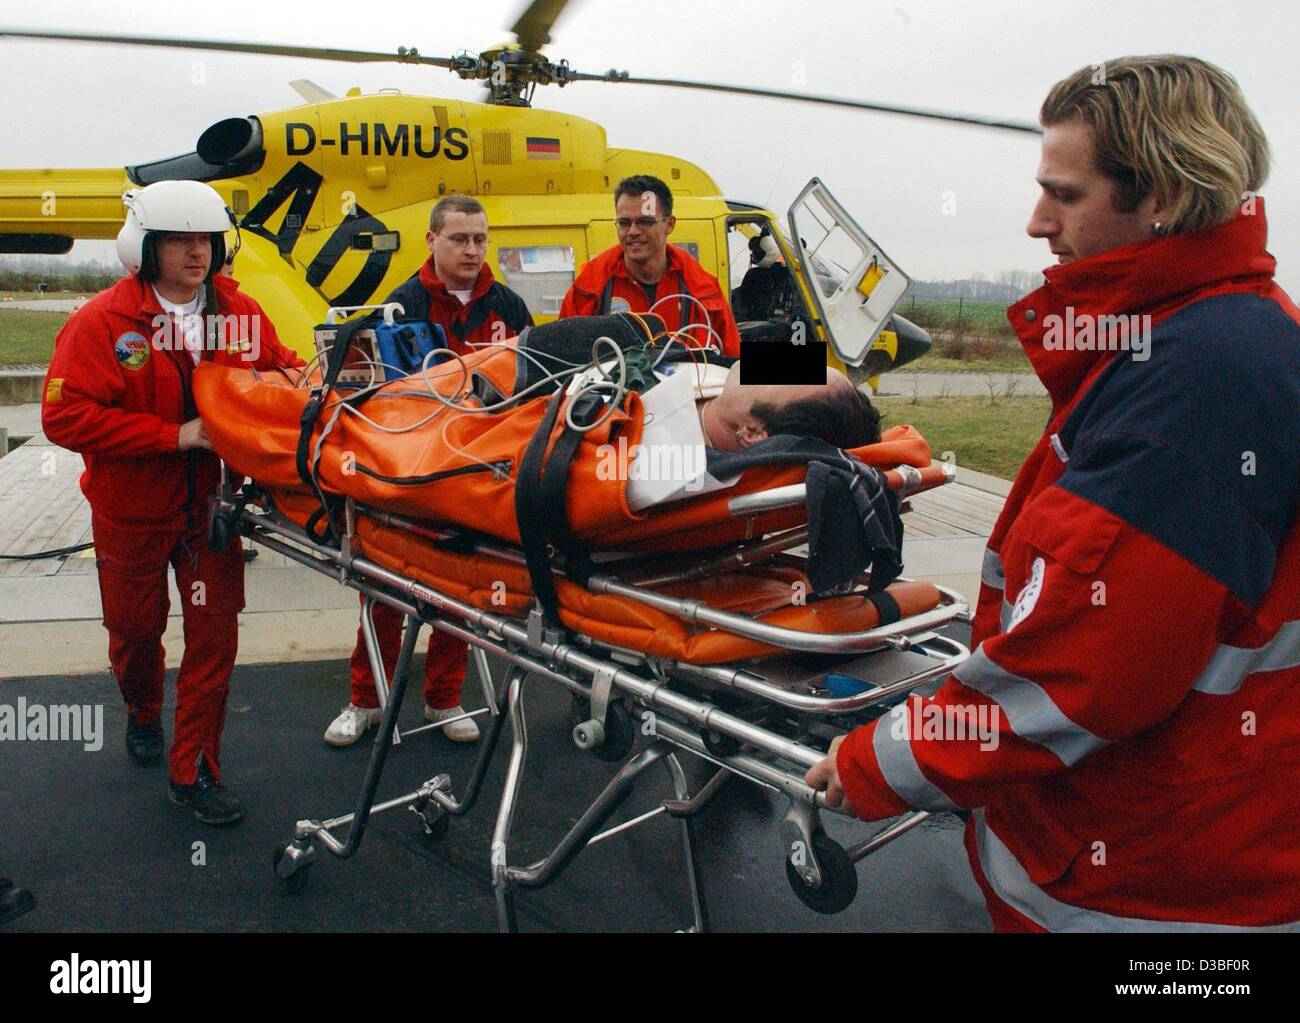 (dpa) - Emergency physician Thomas Ramolla and his assistant Daniel Gerth carry an injured person on a stretcher - Stock Image